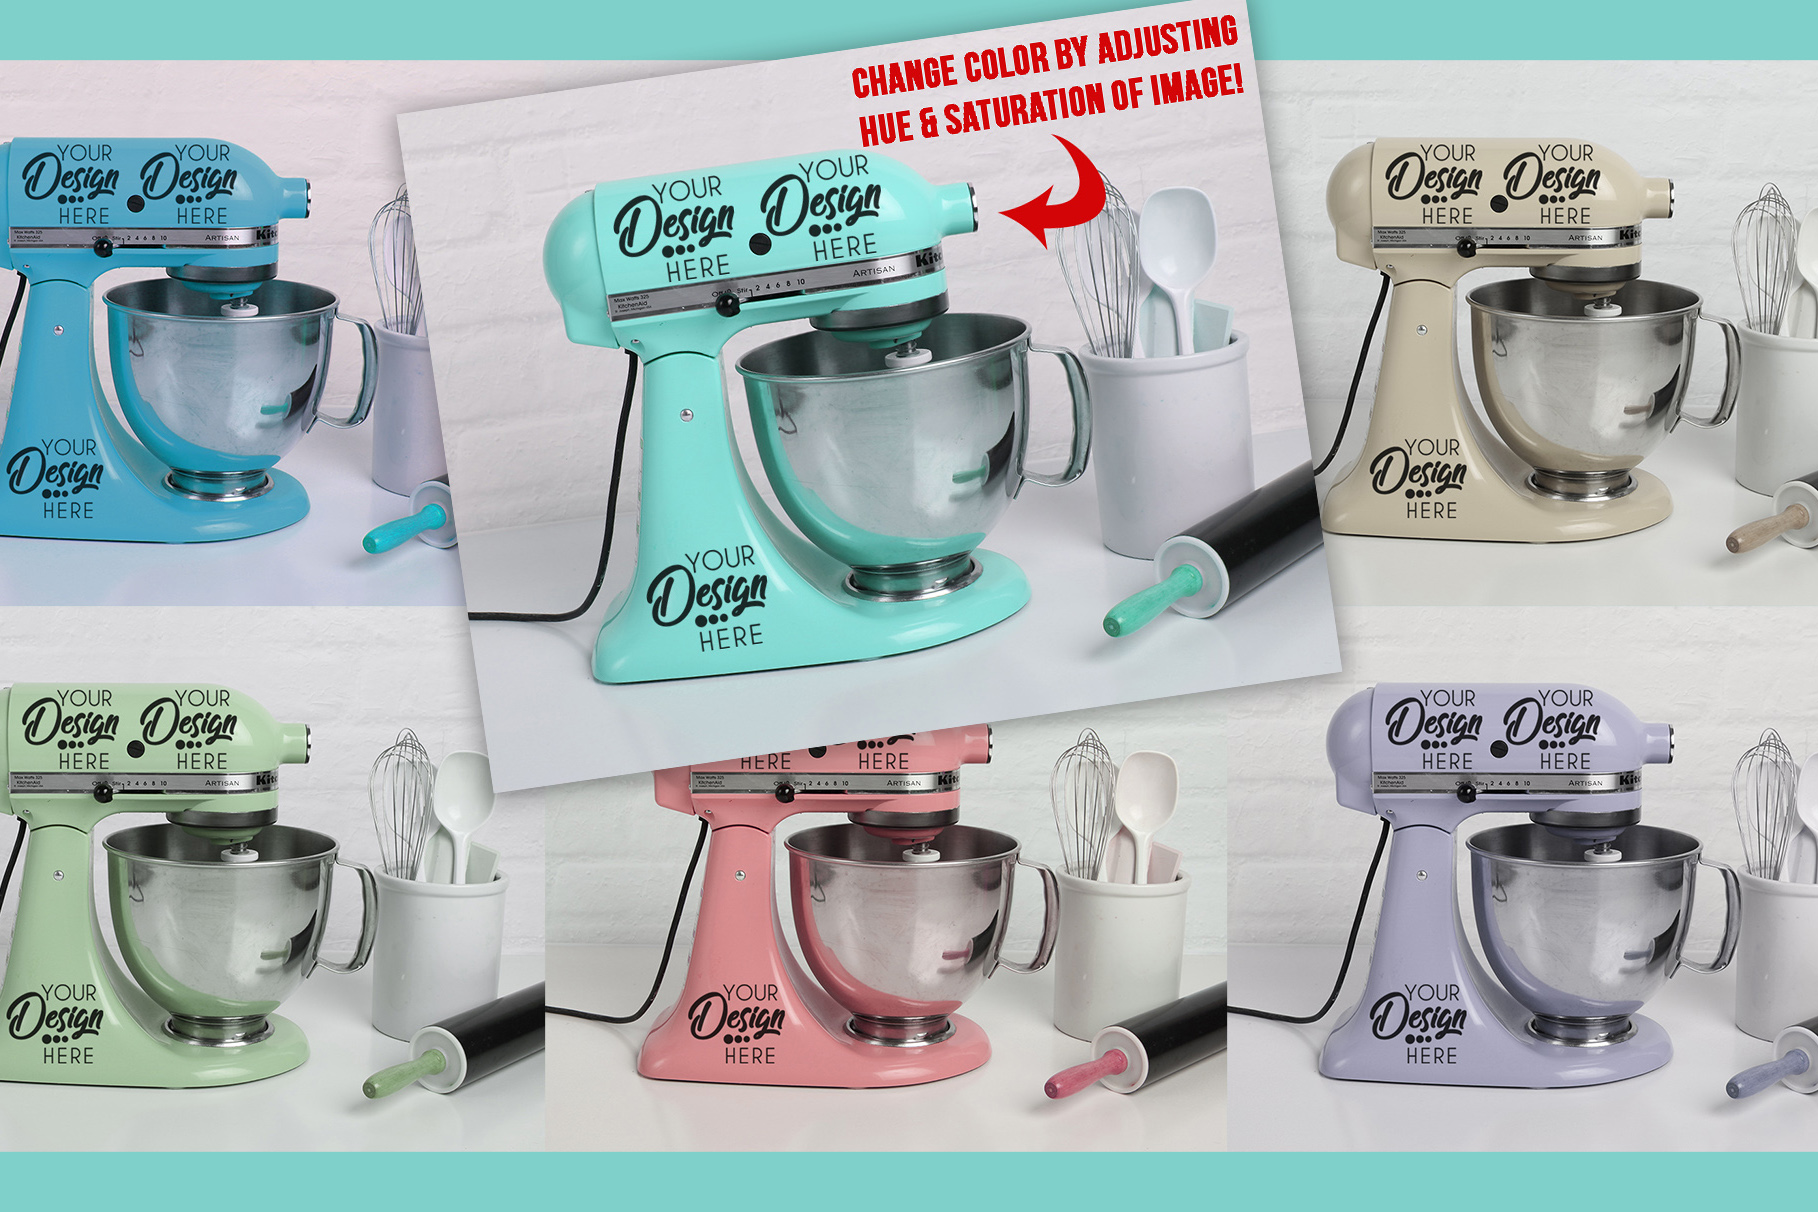 Kitchenaid Mixer Decal Svg ✓ Bahuma Sticker